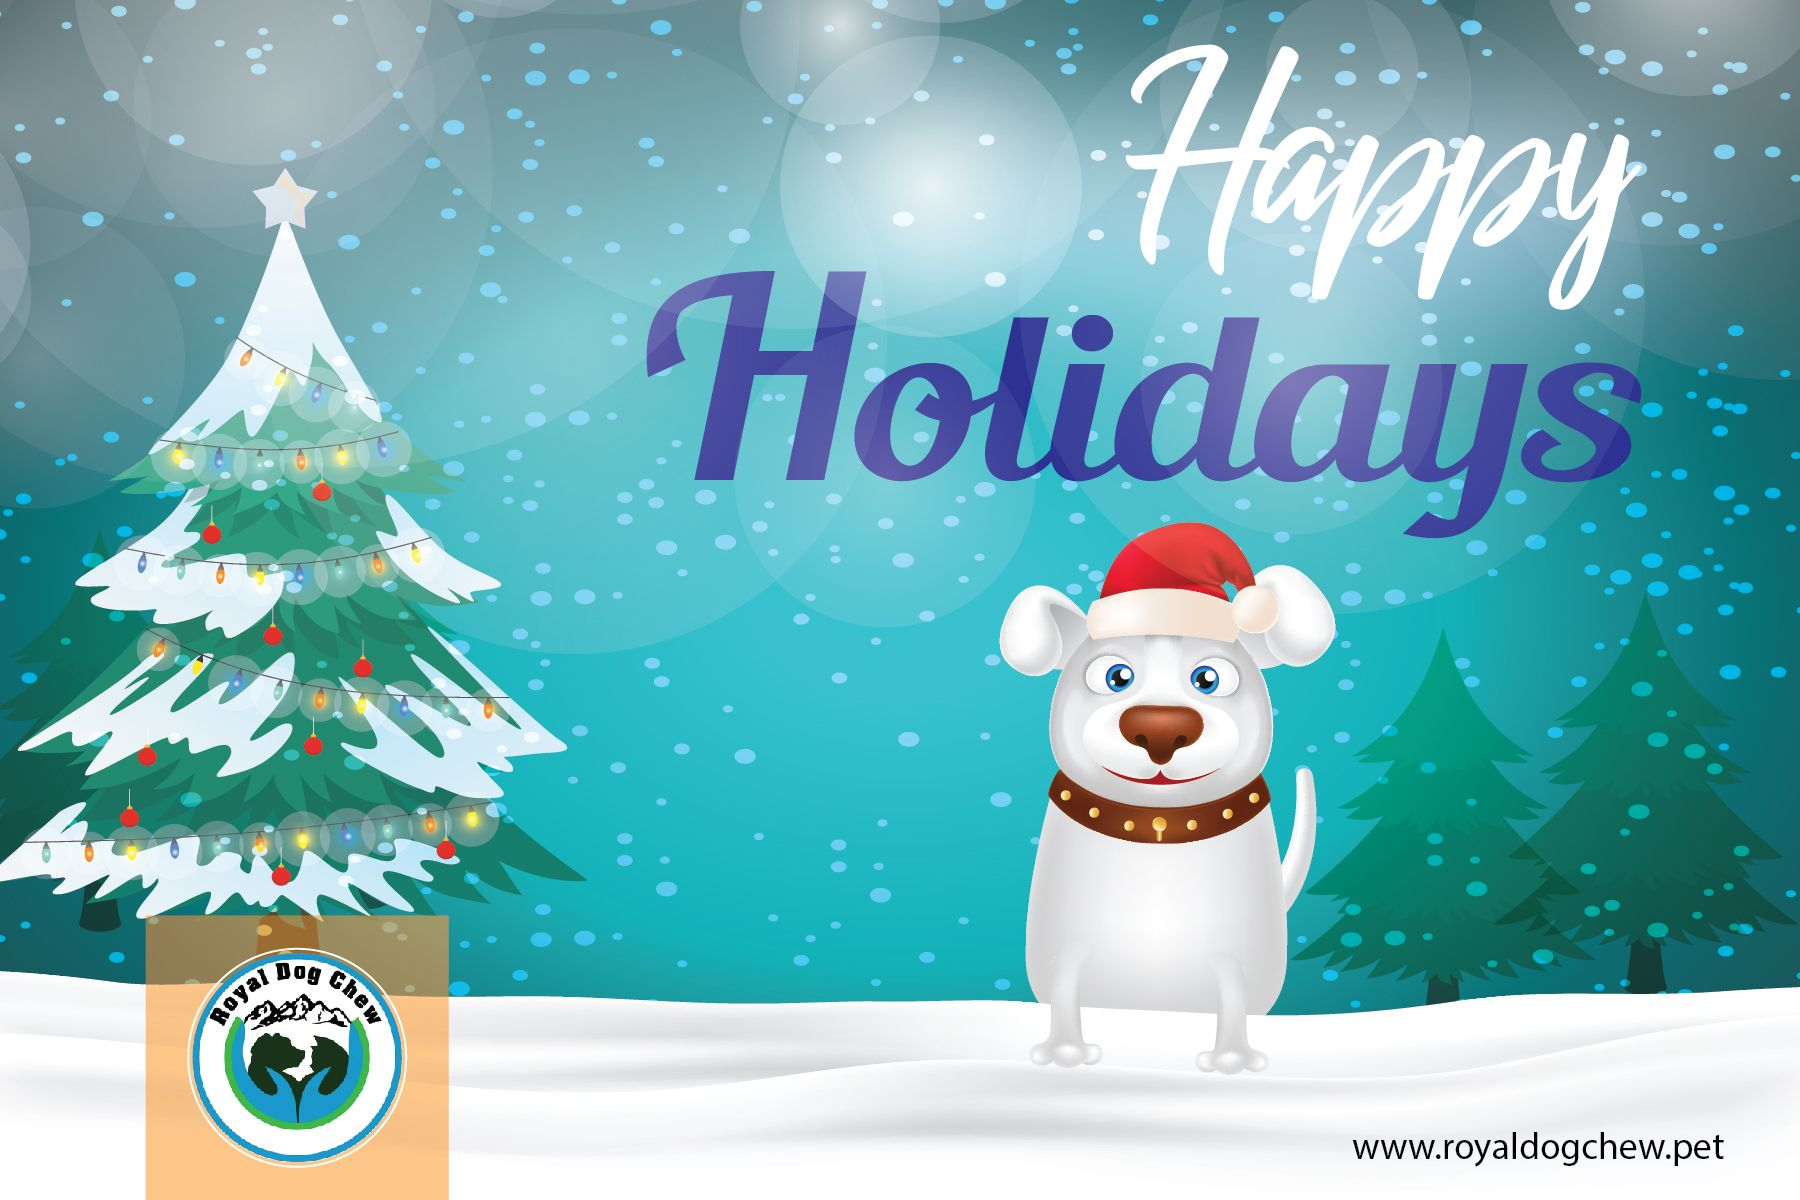 A Joyous Christmas Greeting To You And Yours Family Thank You For